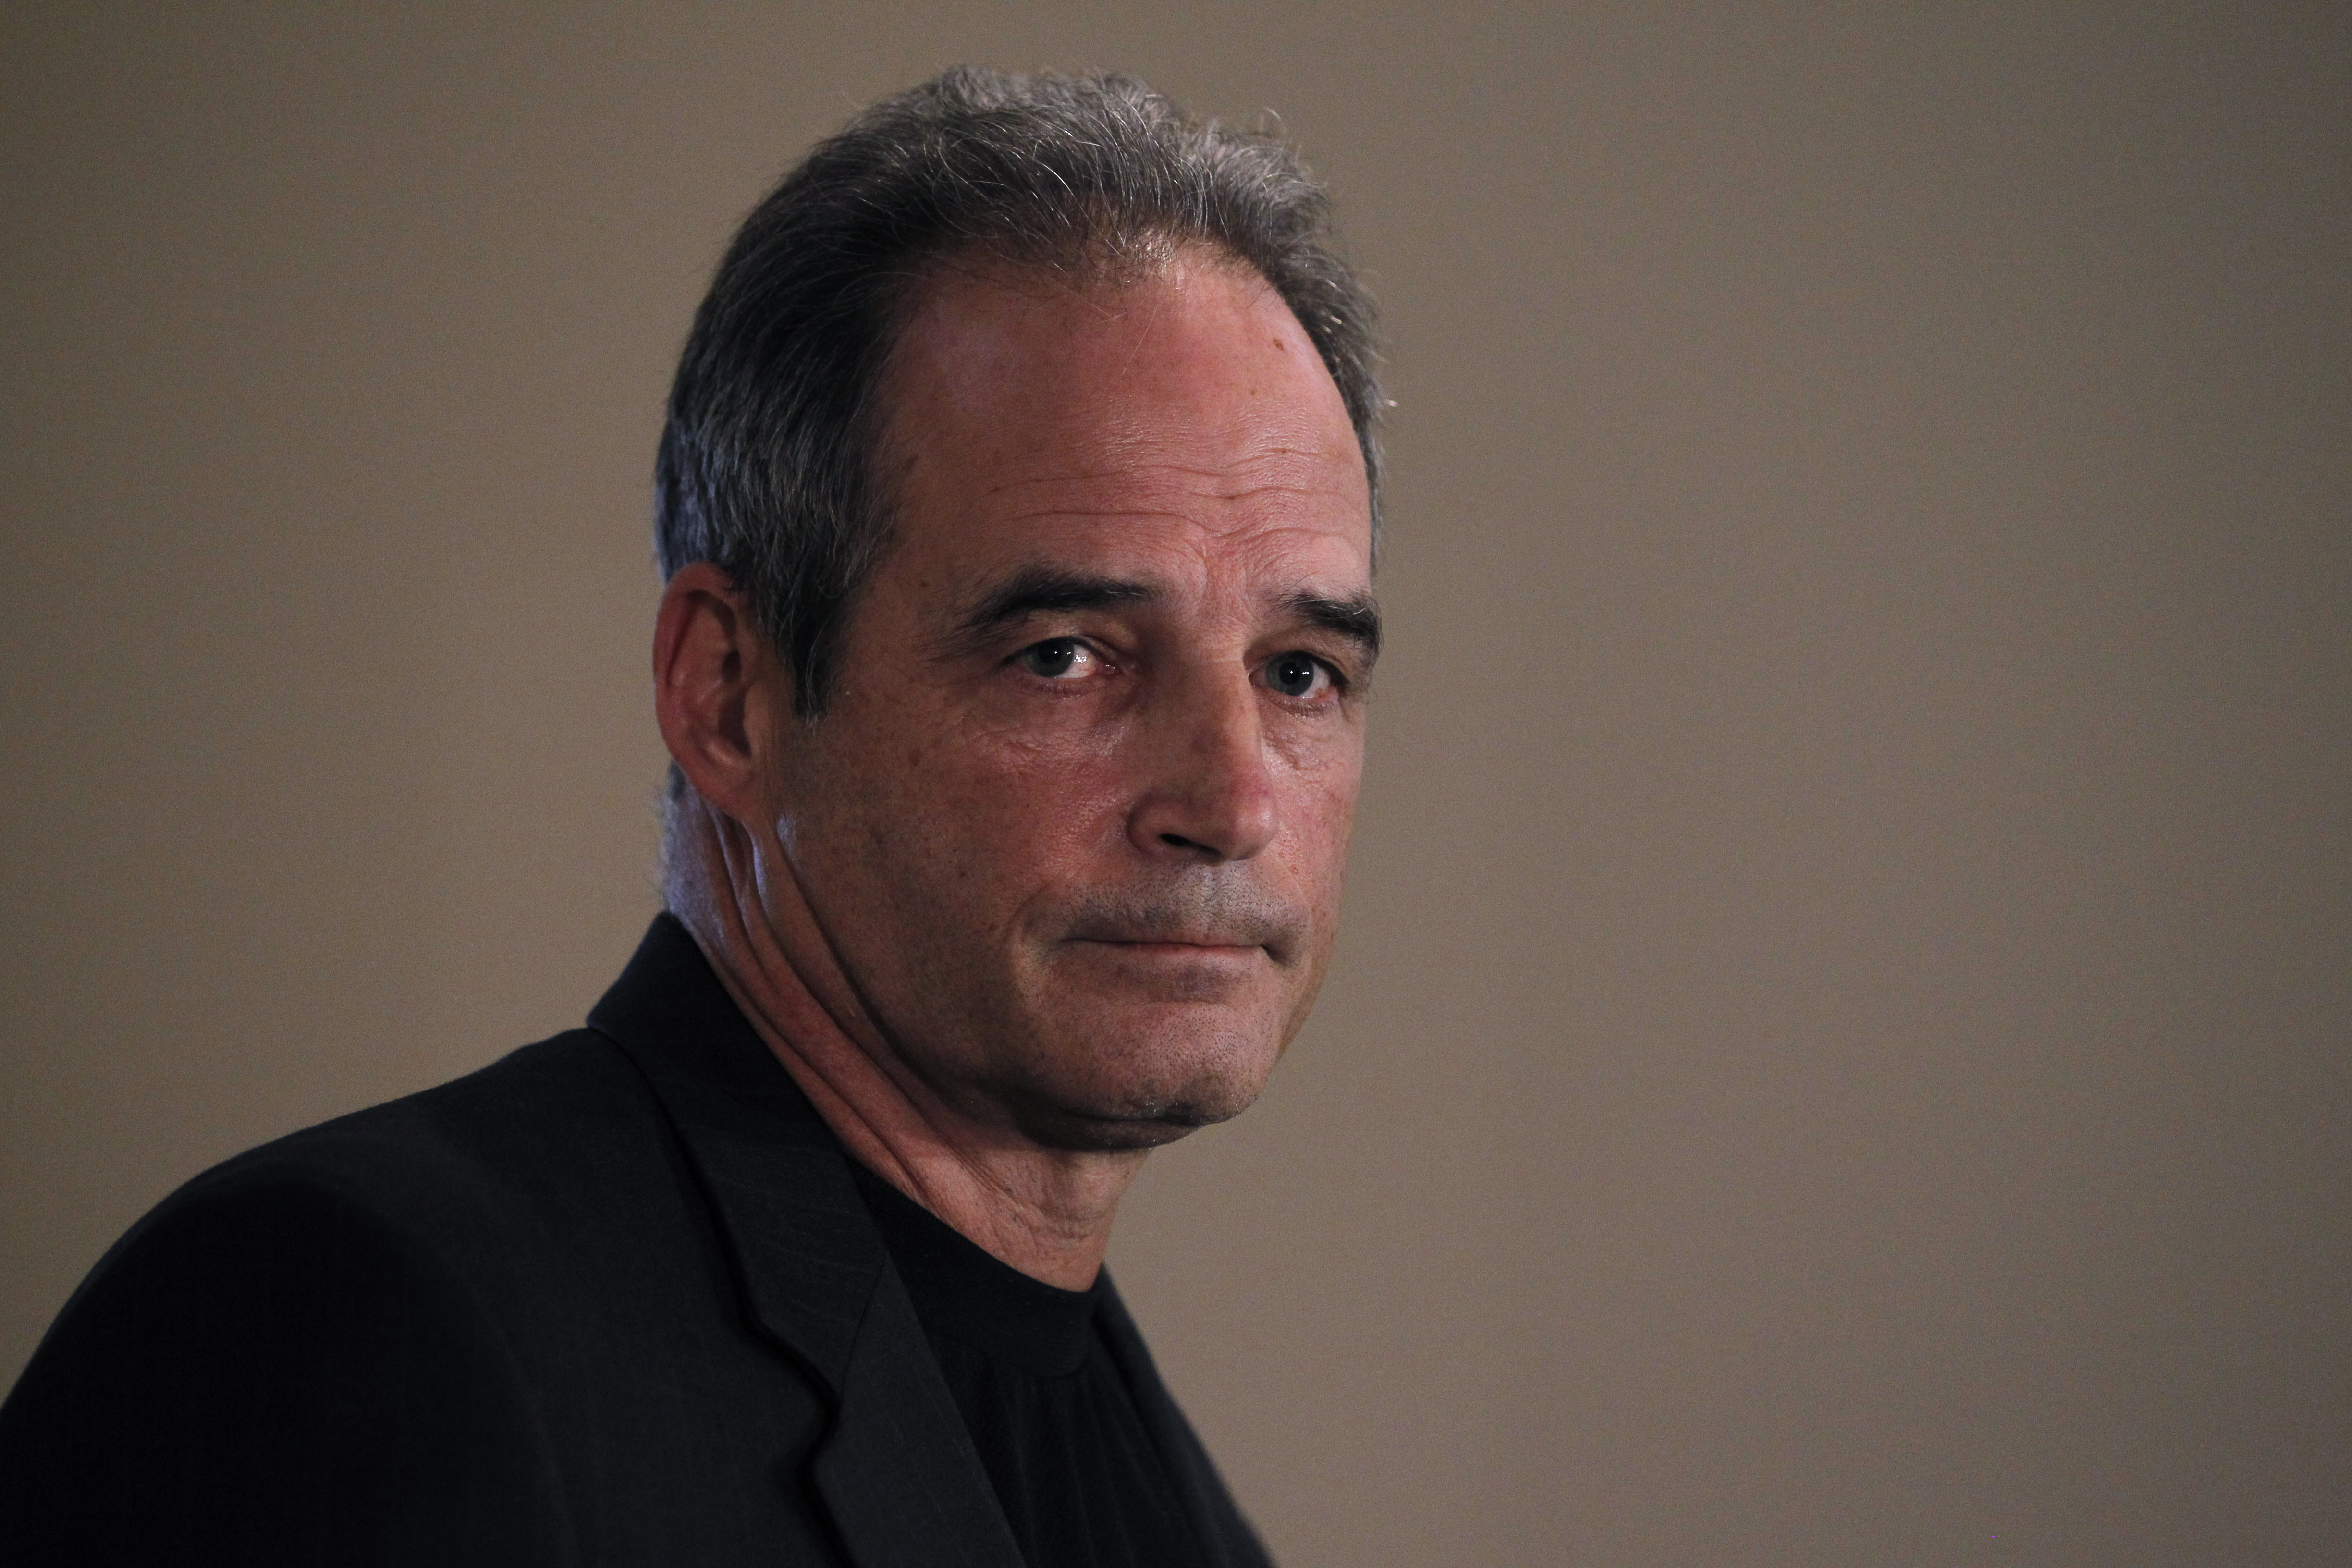 FILE - In this Nov. 21, 2011, file photo, Missouri head football coach Gary Pinkel speaks during a news conference in Columbia, Mo. Pinkel will resign his position following the conclusion of the 2015 season, and he will remain as Mizzou's coach through D